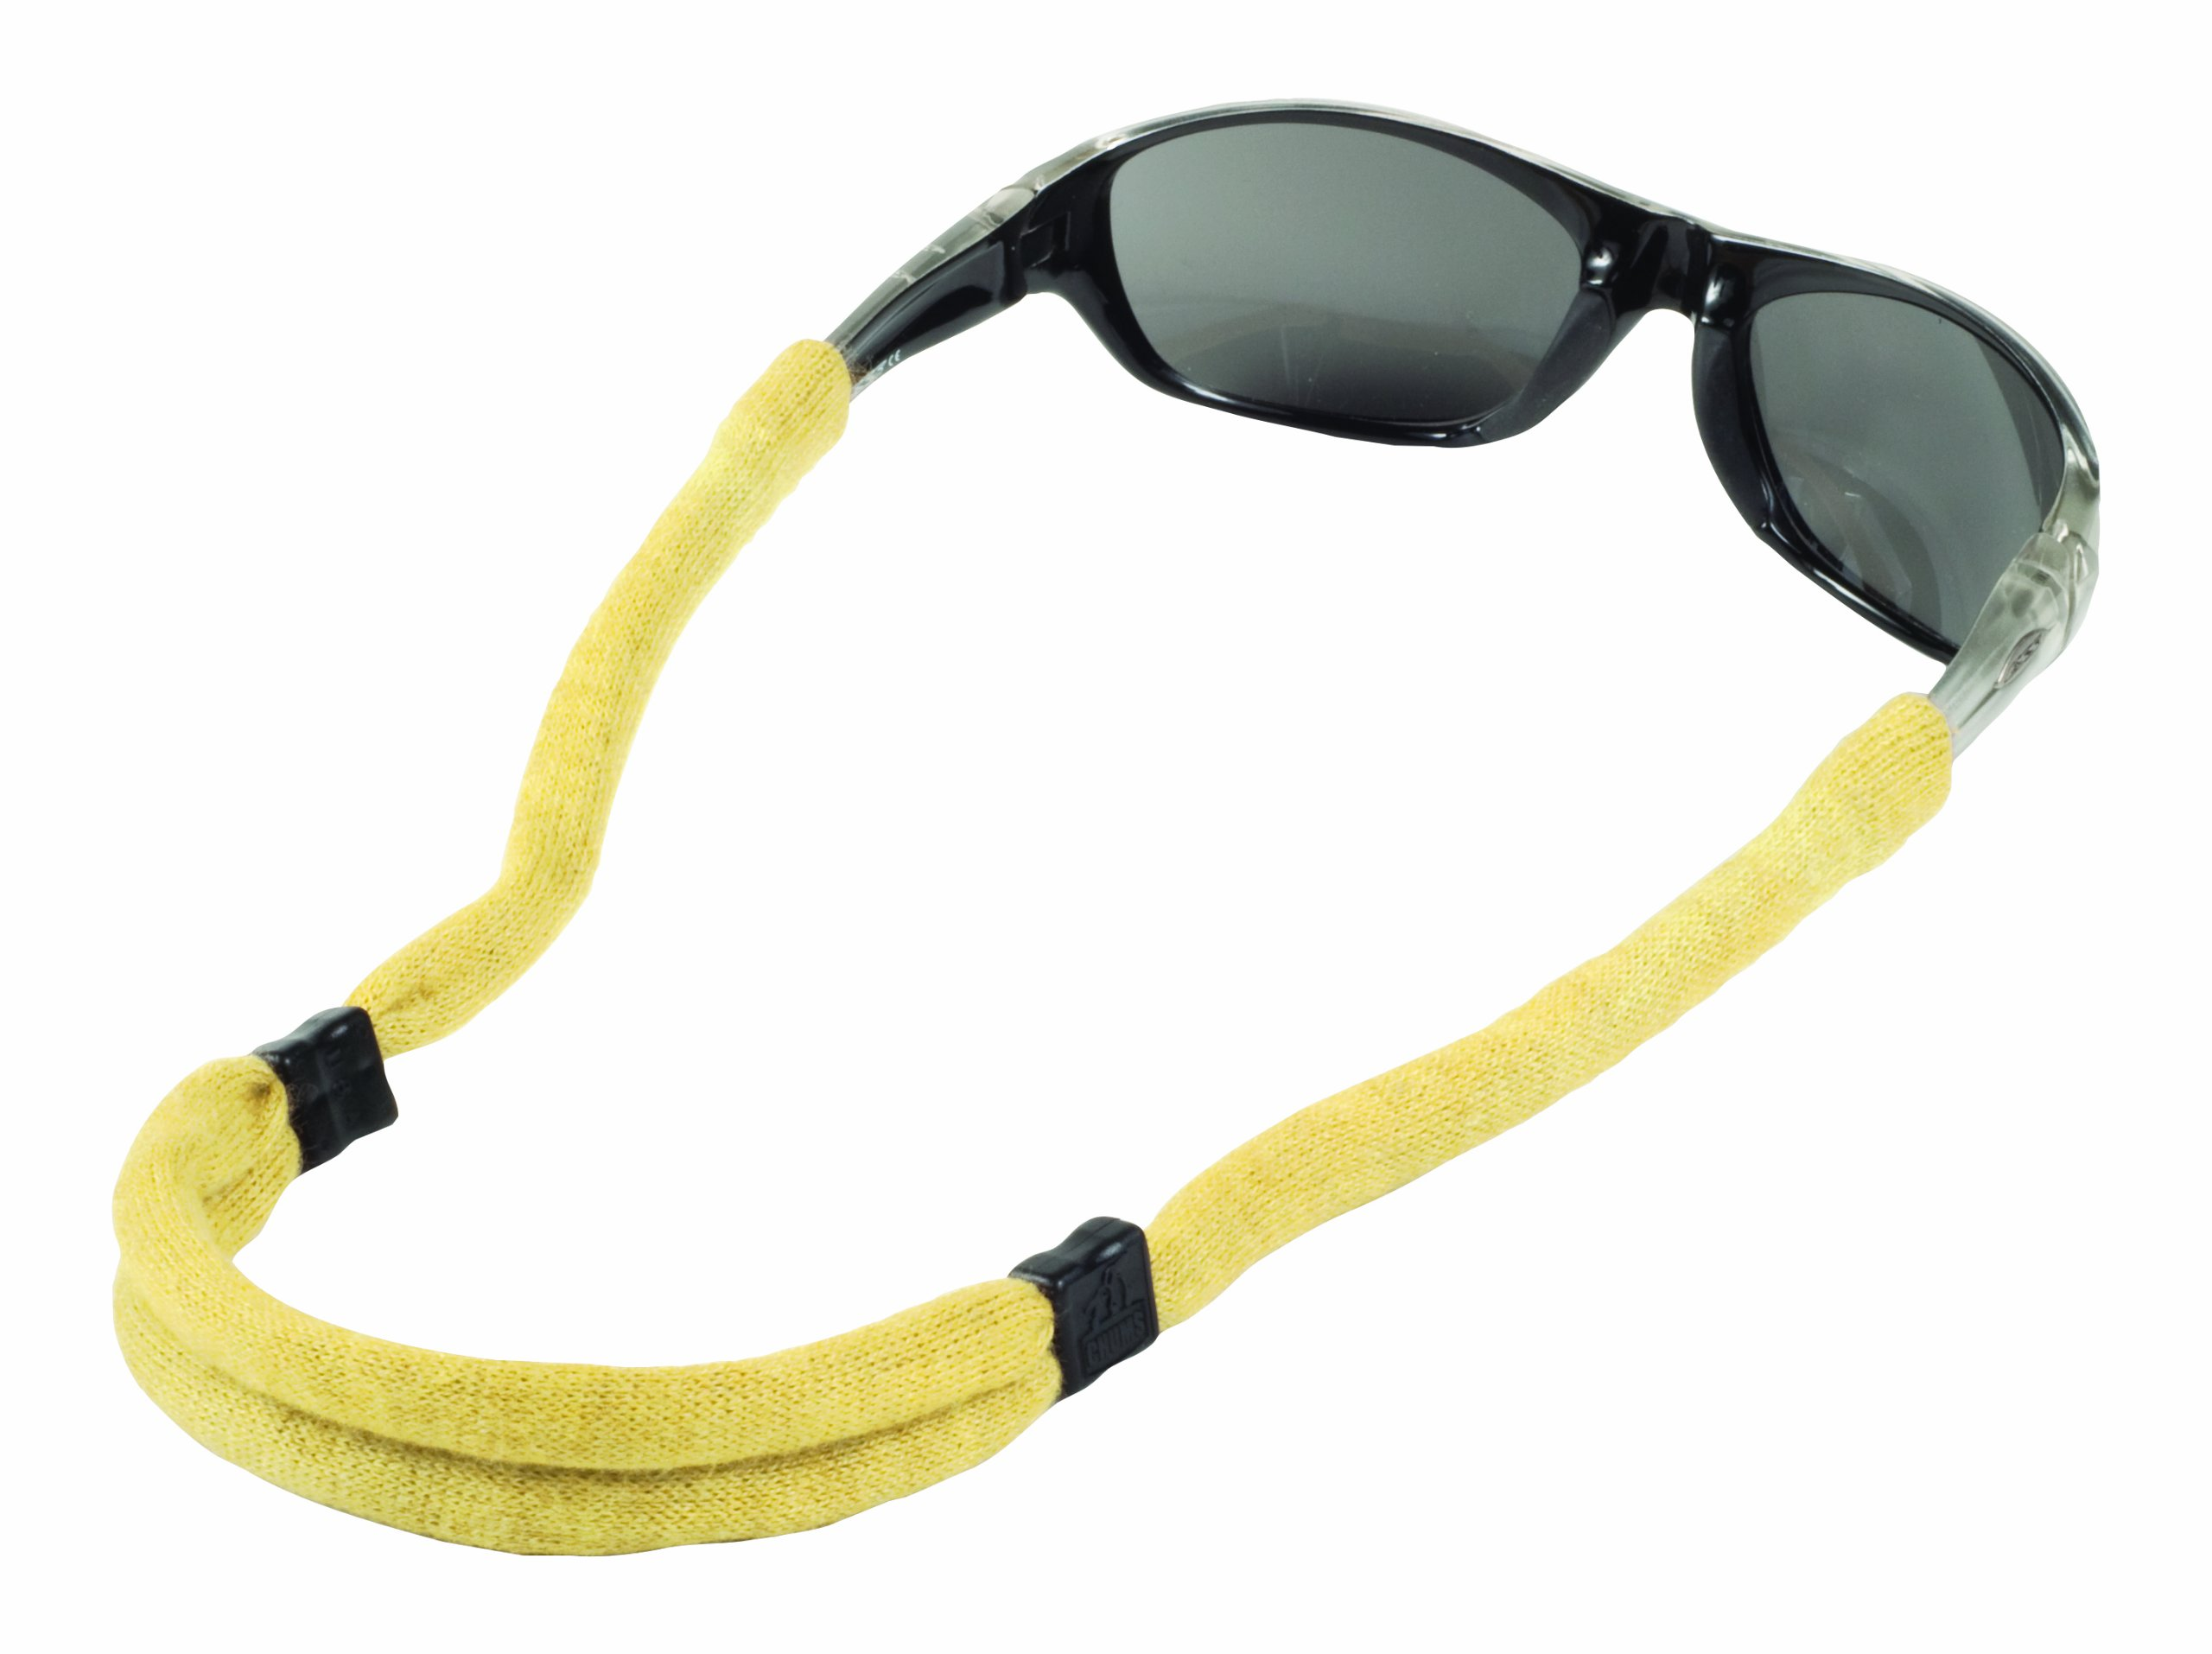 Chums Safety 12405108k Flame Resistant Kevlar No Tail Adjustable Eyewear Retainer, Natural (Pack of 6) by Chums